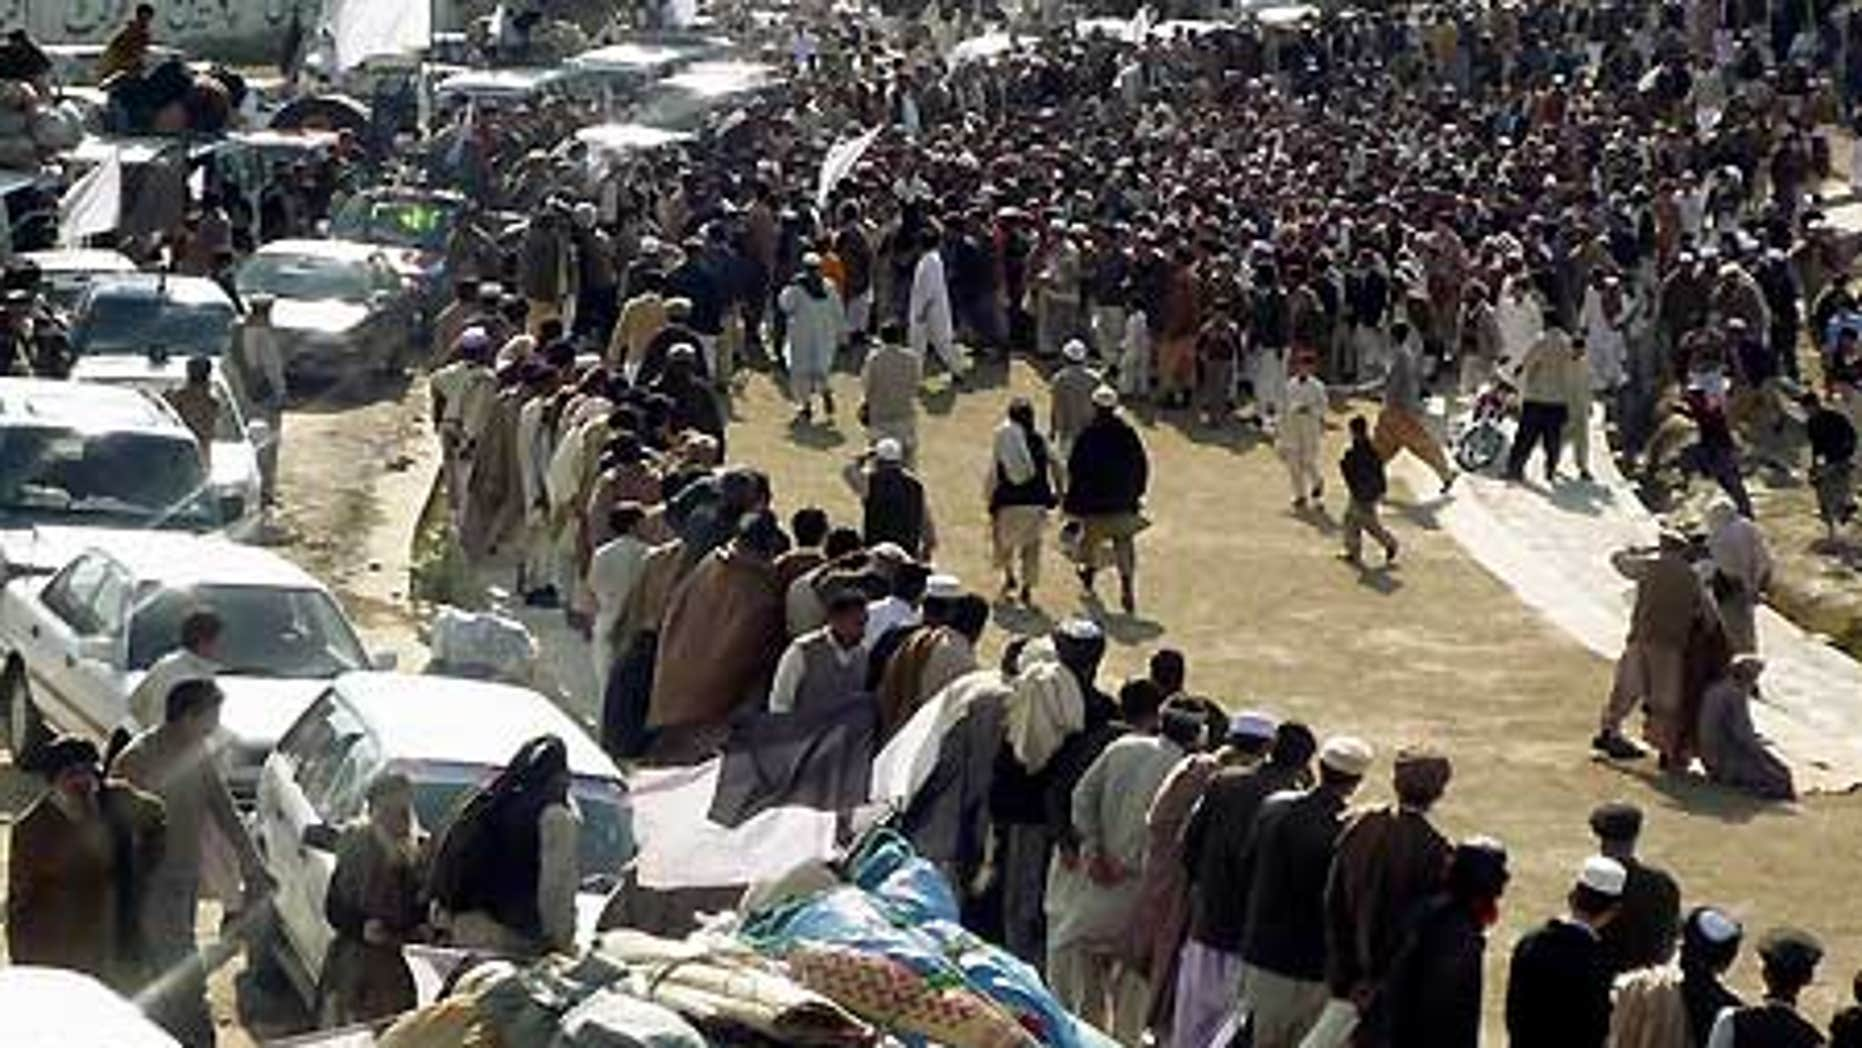 Feb. 17: A crowd gathers in Mingora, a city in the troubled Swat valley, Pakistan.